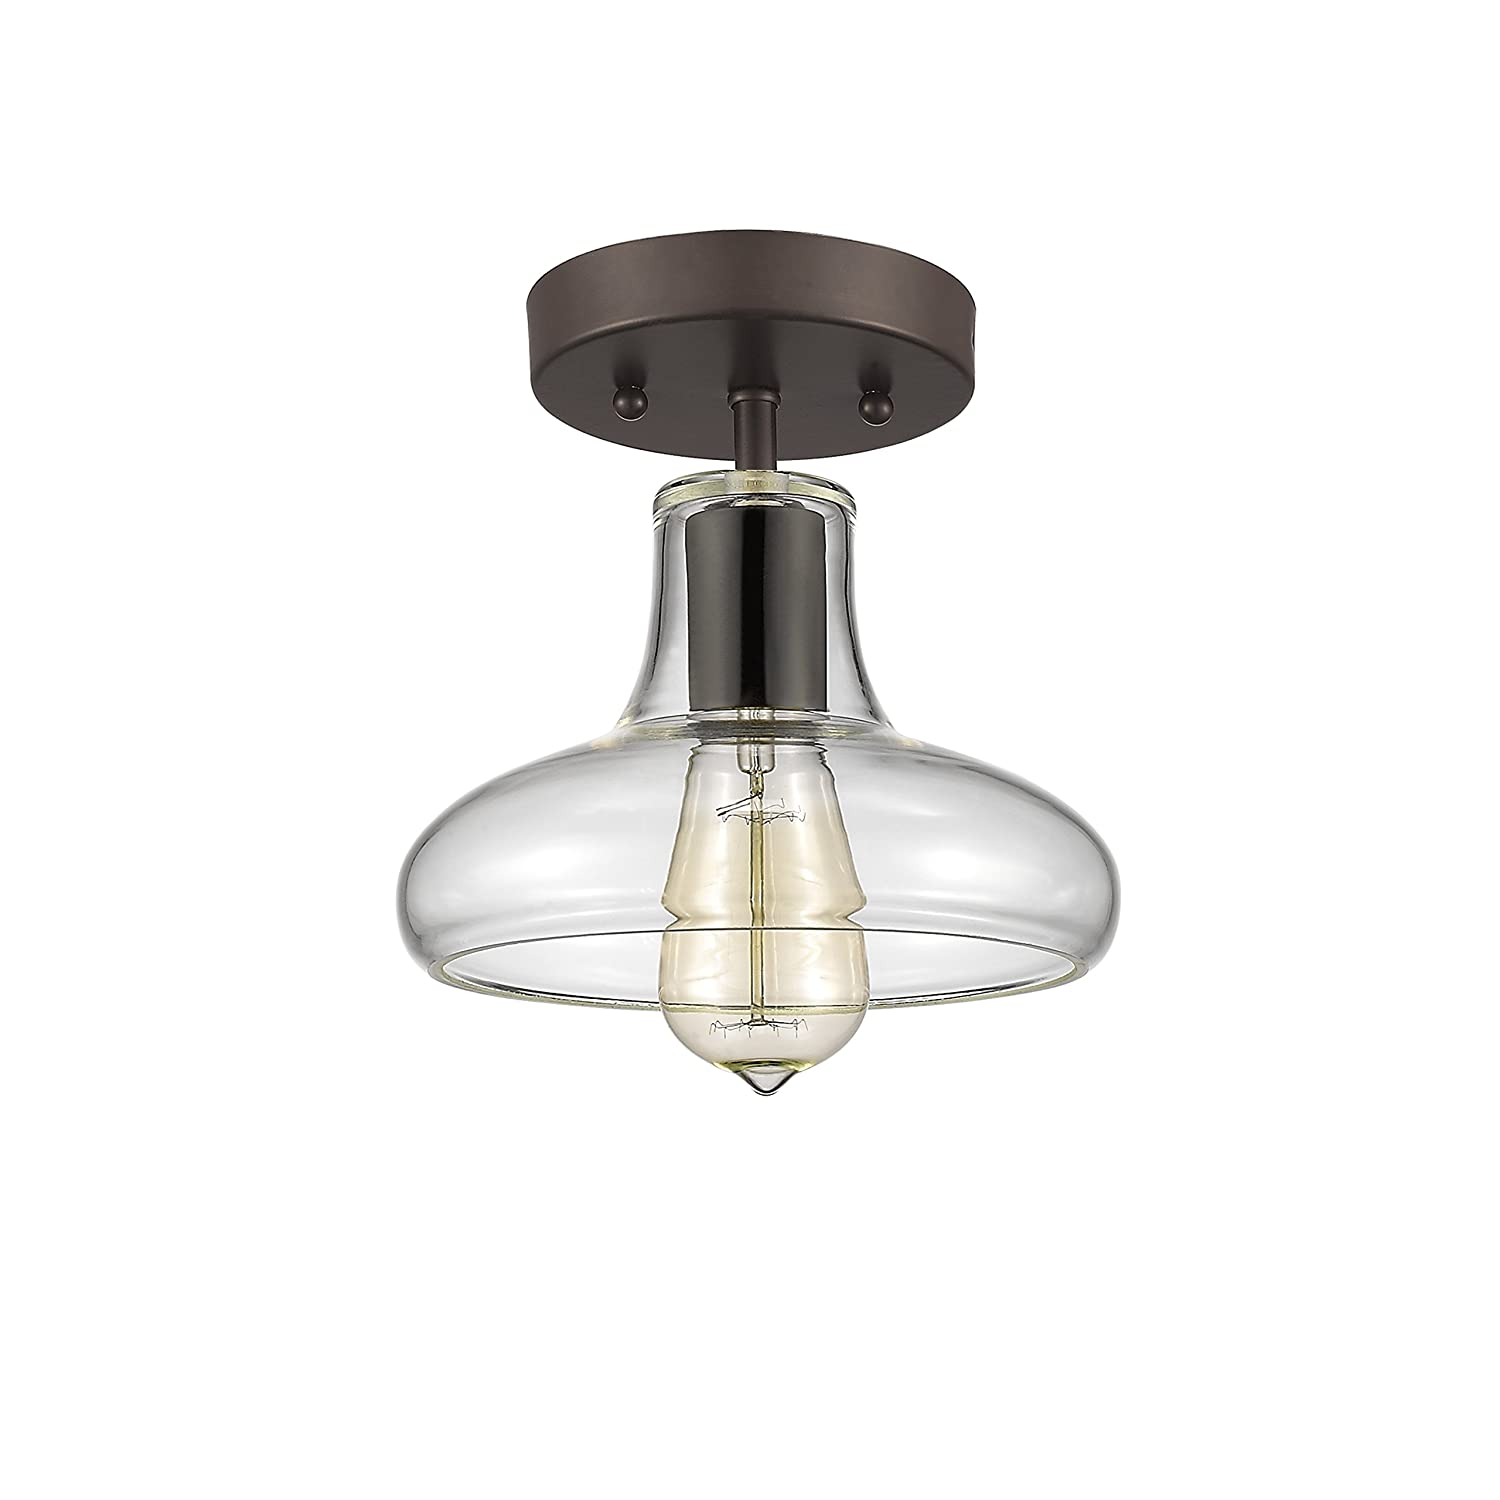 Chloe lighting ch854009cl08 sf1 industrial industrial style 1 light chloe lighting ch854009cl08 sf1 industrial industrial style 1 light rubbed bronze semi flush ceiling fixture 8 shade amazon arubaitofo Image collections